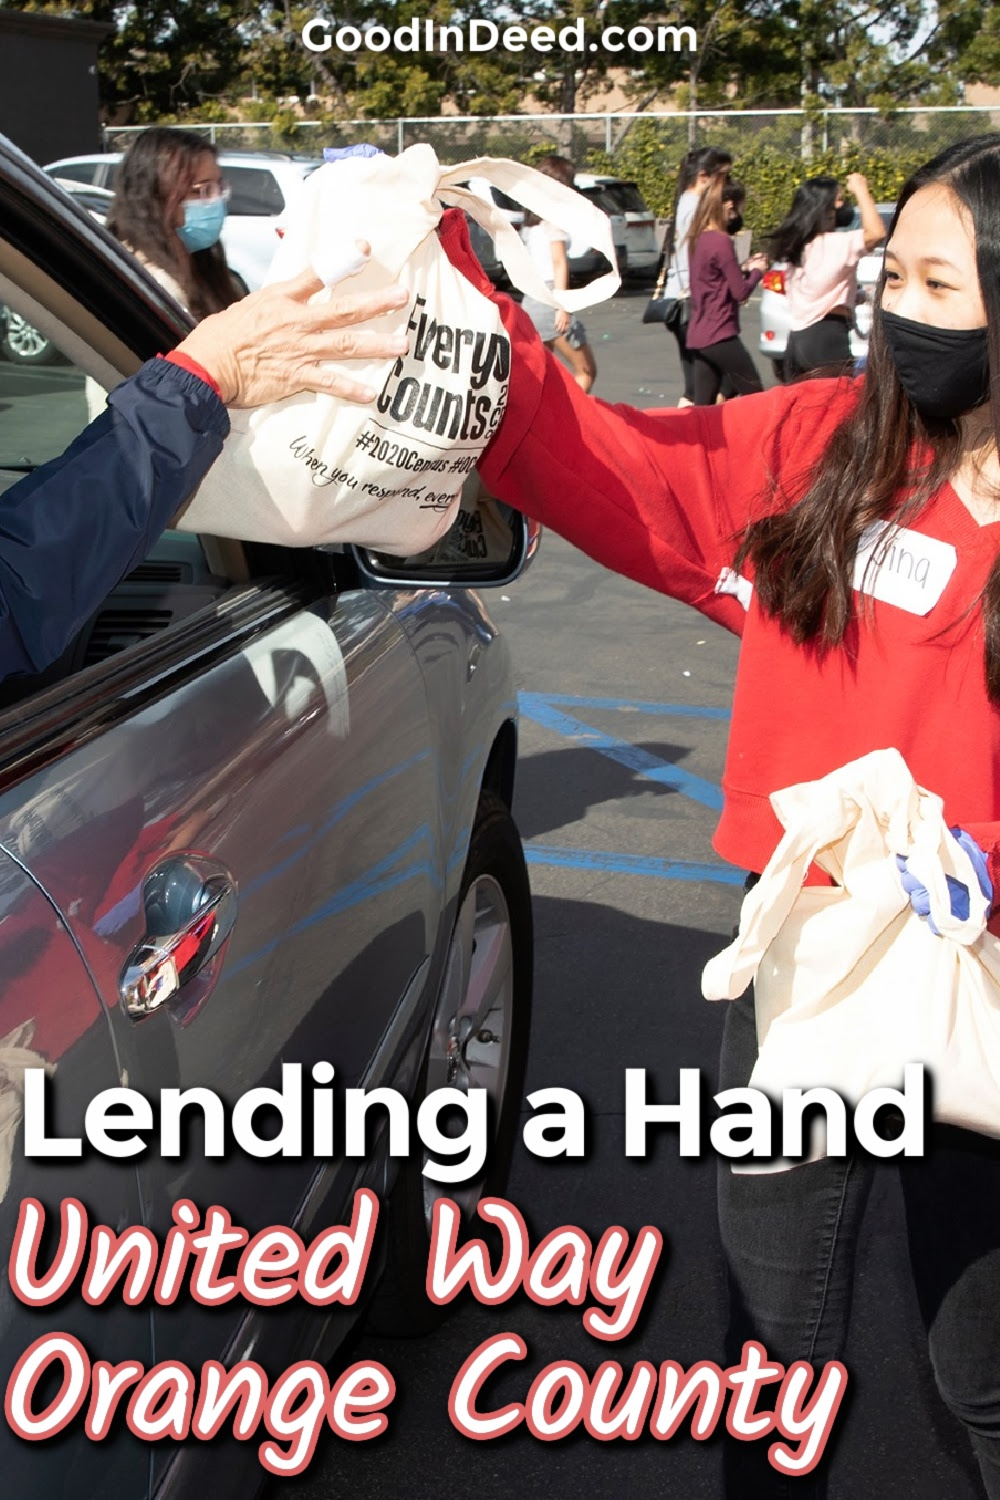 We can all lend a helping hand the United Way of Orange County so that the future of our community is in good hands.